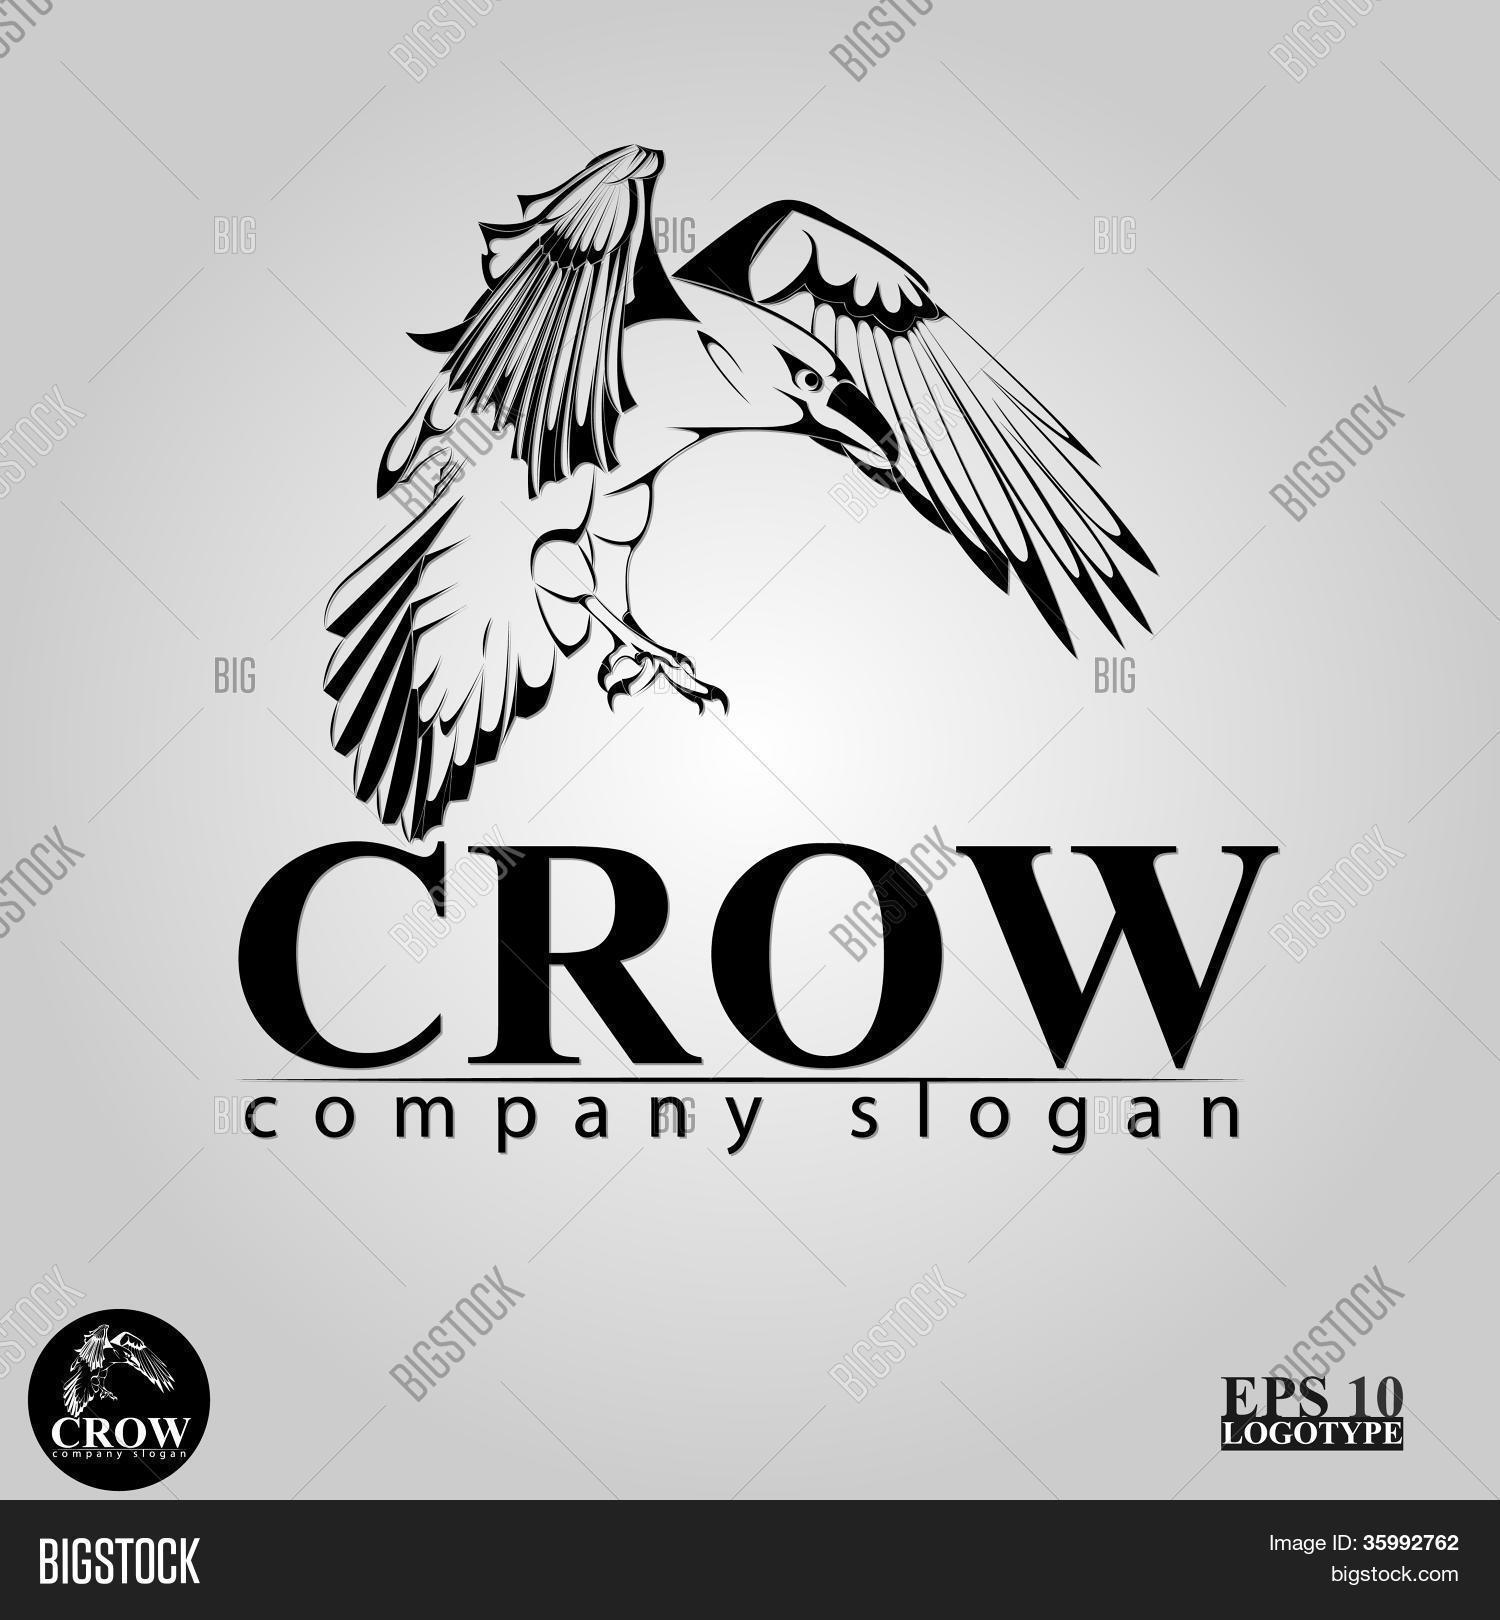 The crow logo - photo#50